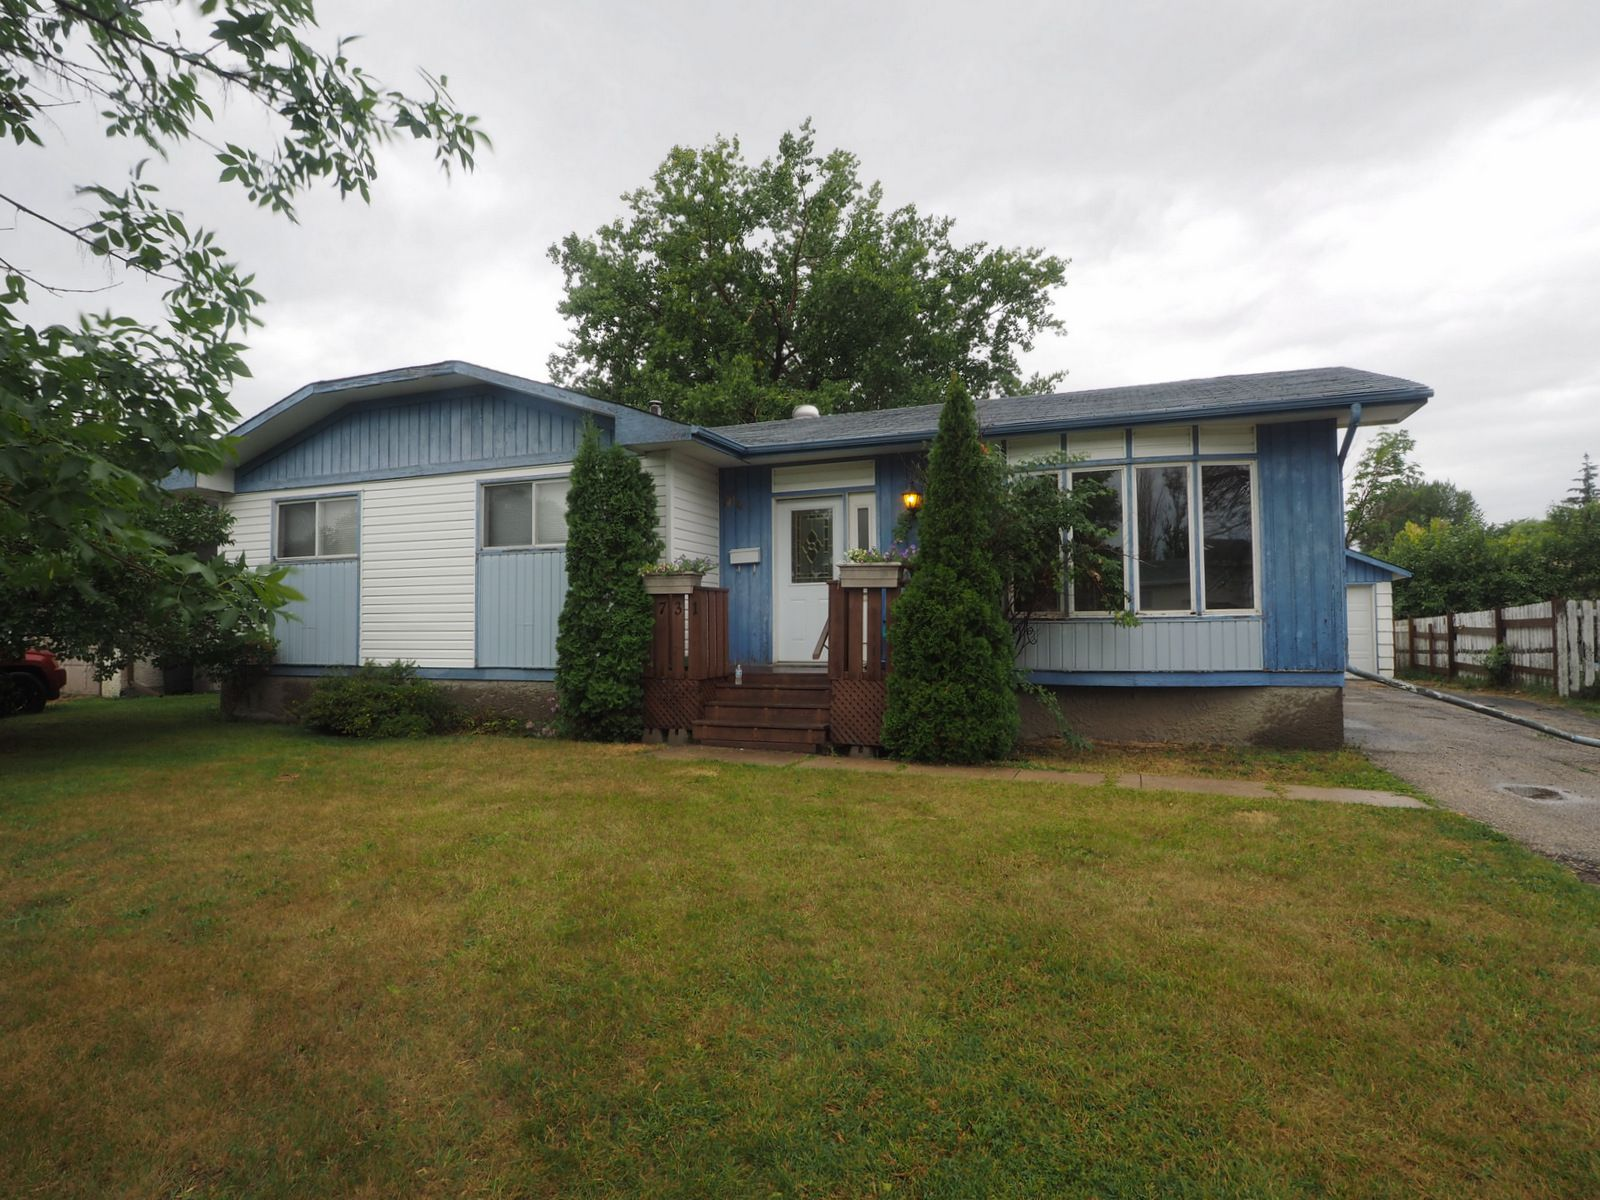 Main Photo: 731 Cedar Bay in Portage la Prairie: House for sale : MLS®# 202019191